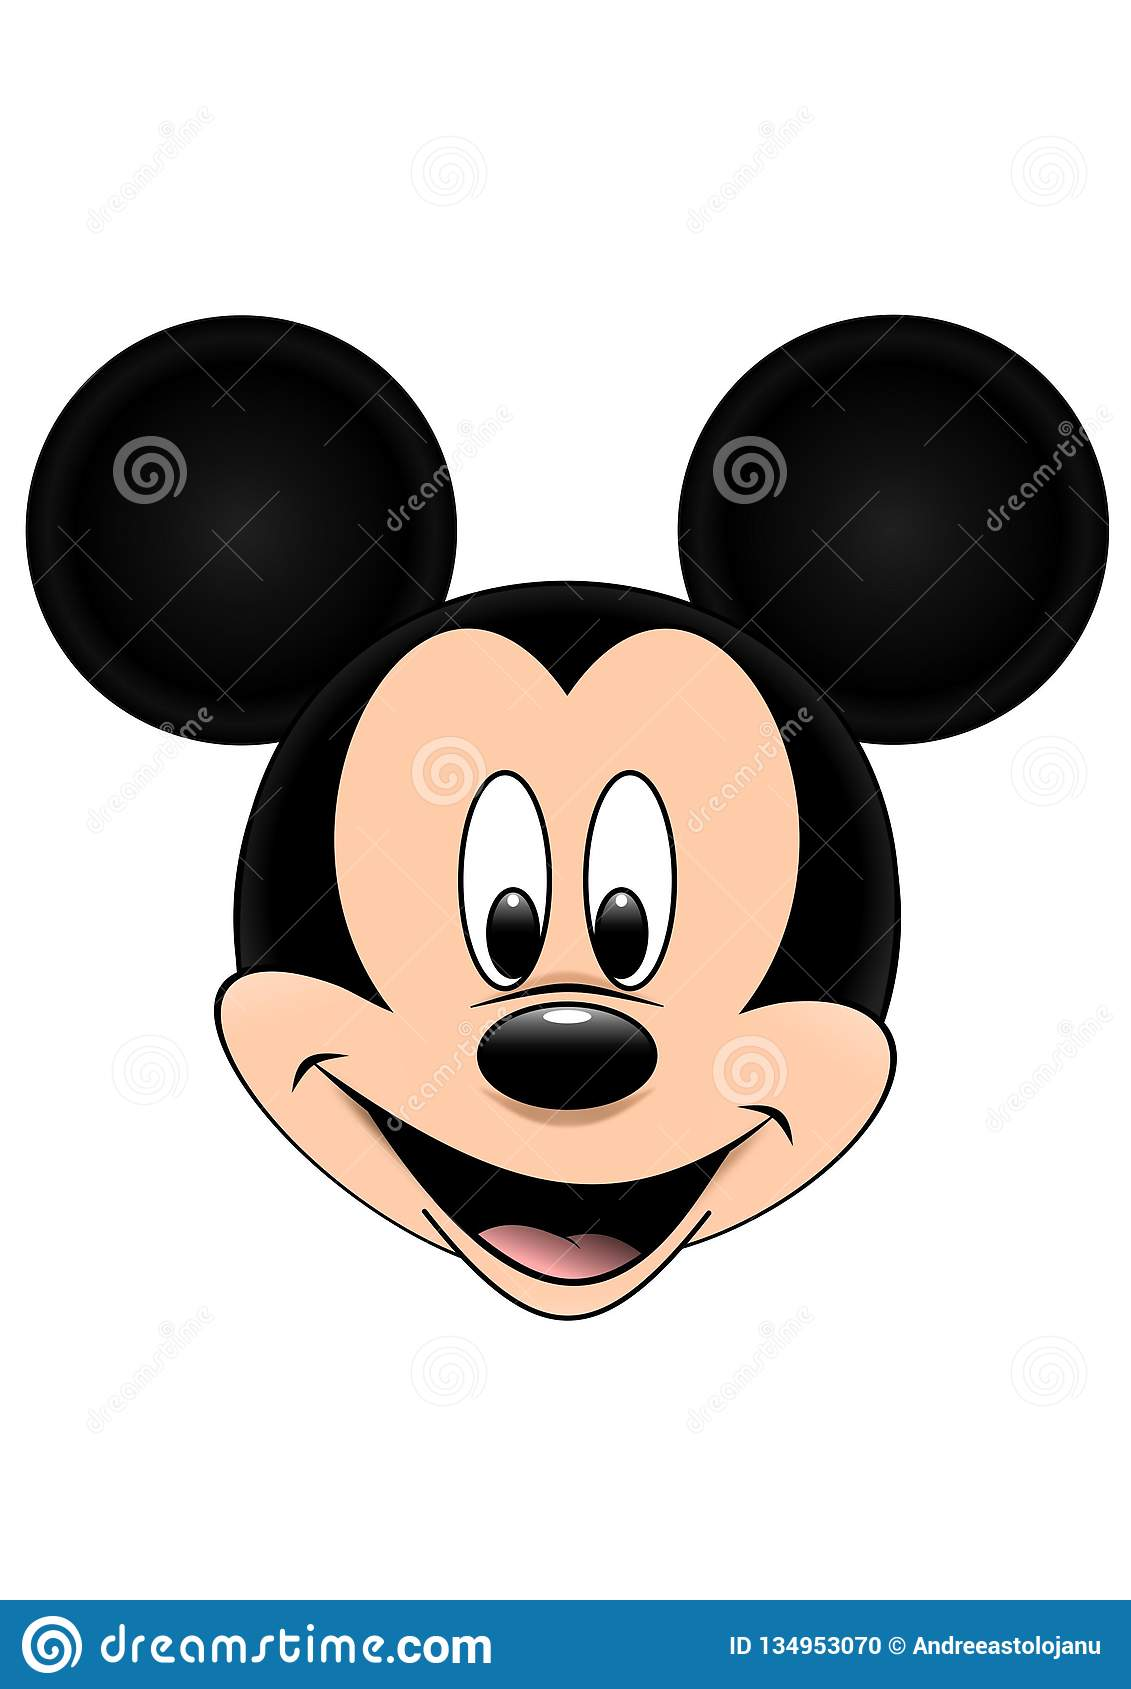 Disney Vector Illustration Of Mickey Mouse Isolated On White